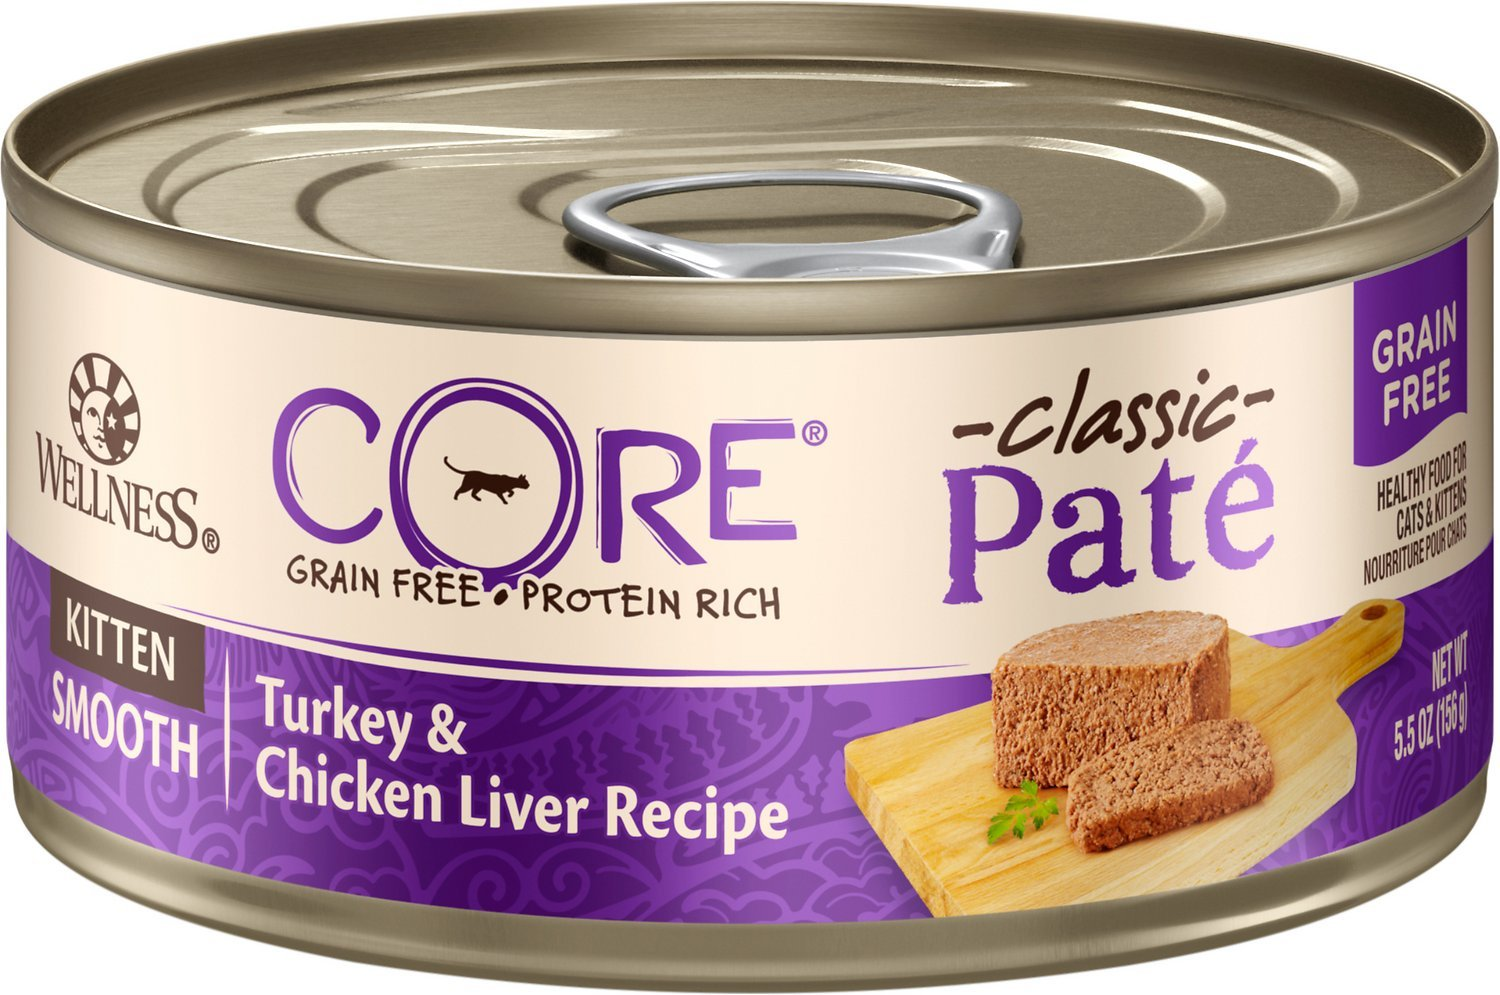 wellness core pate grain free kitten food